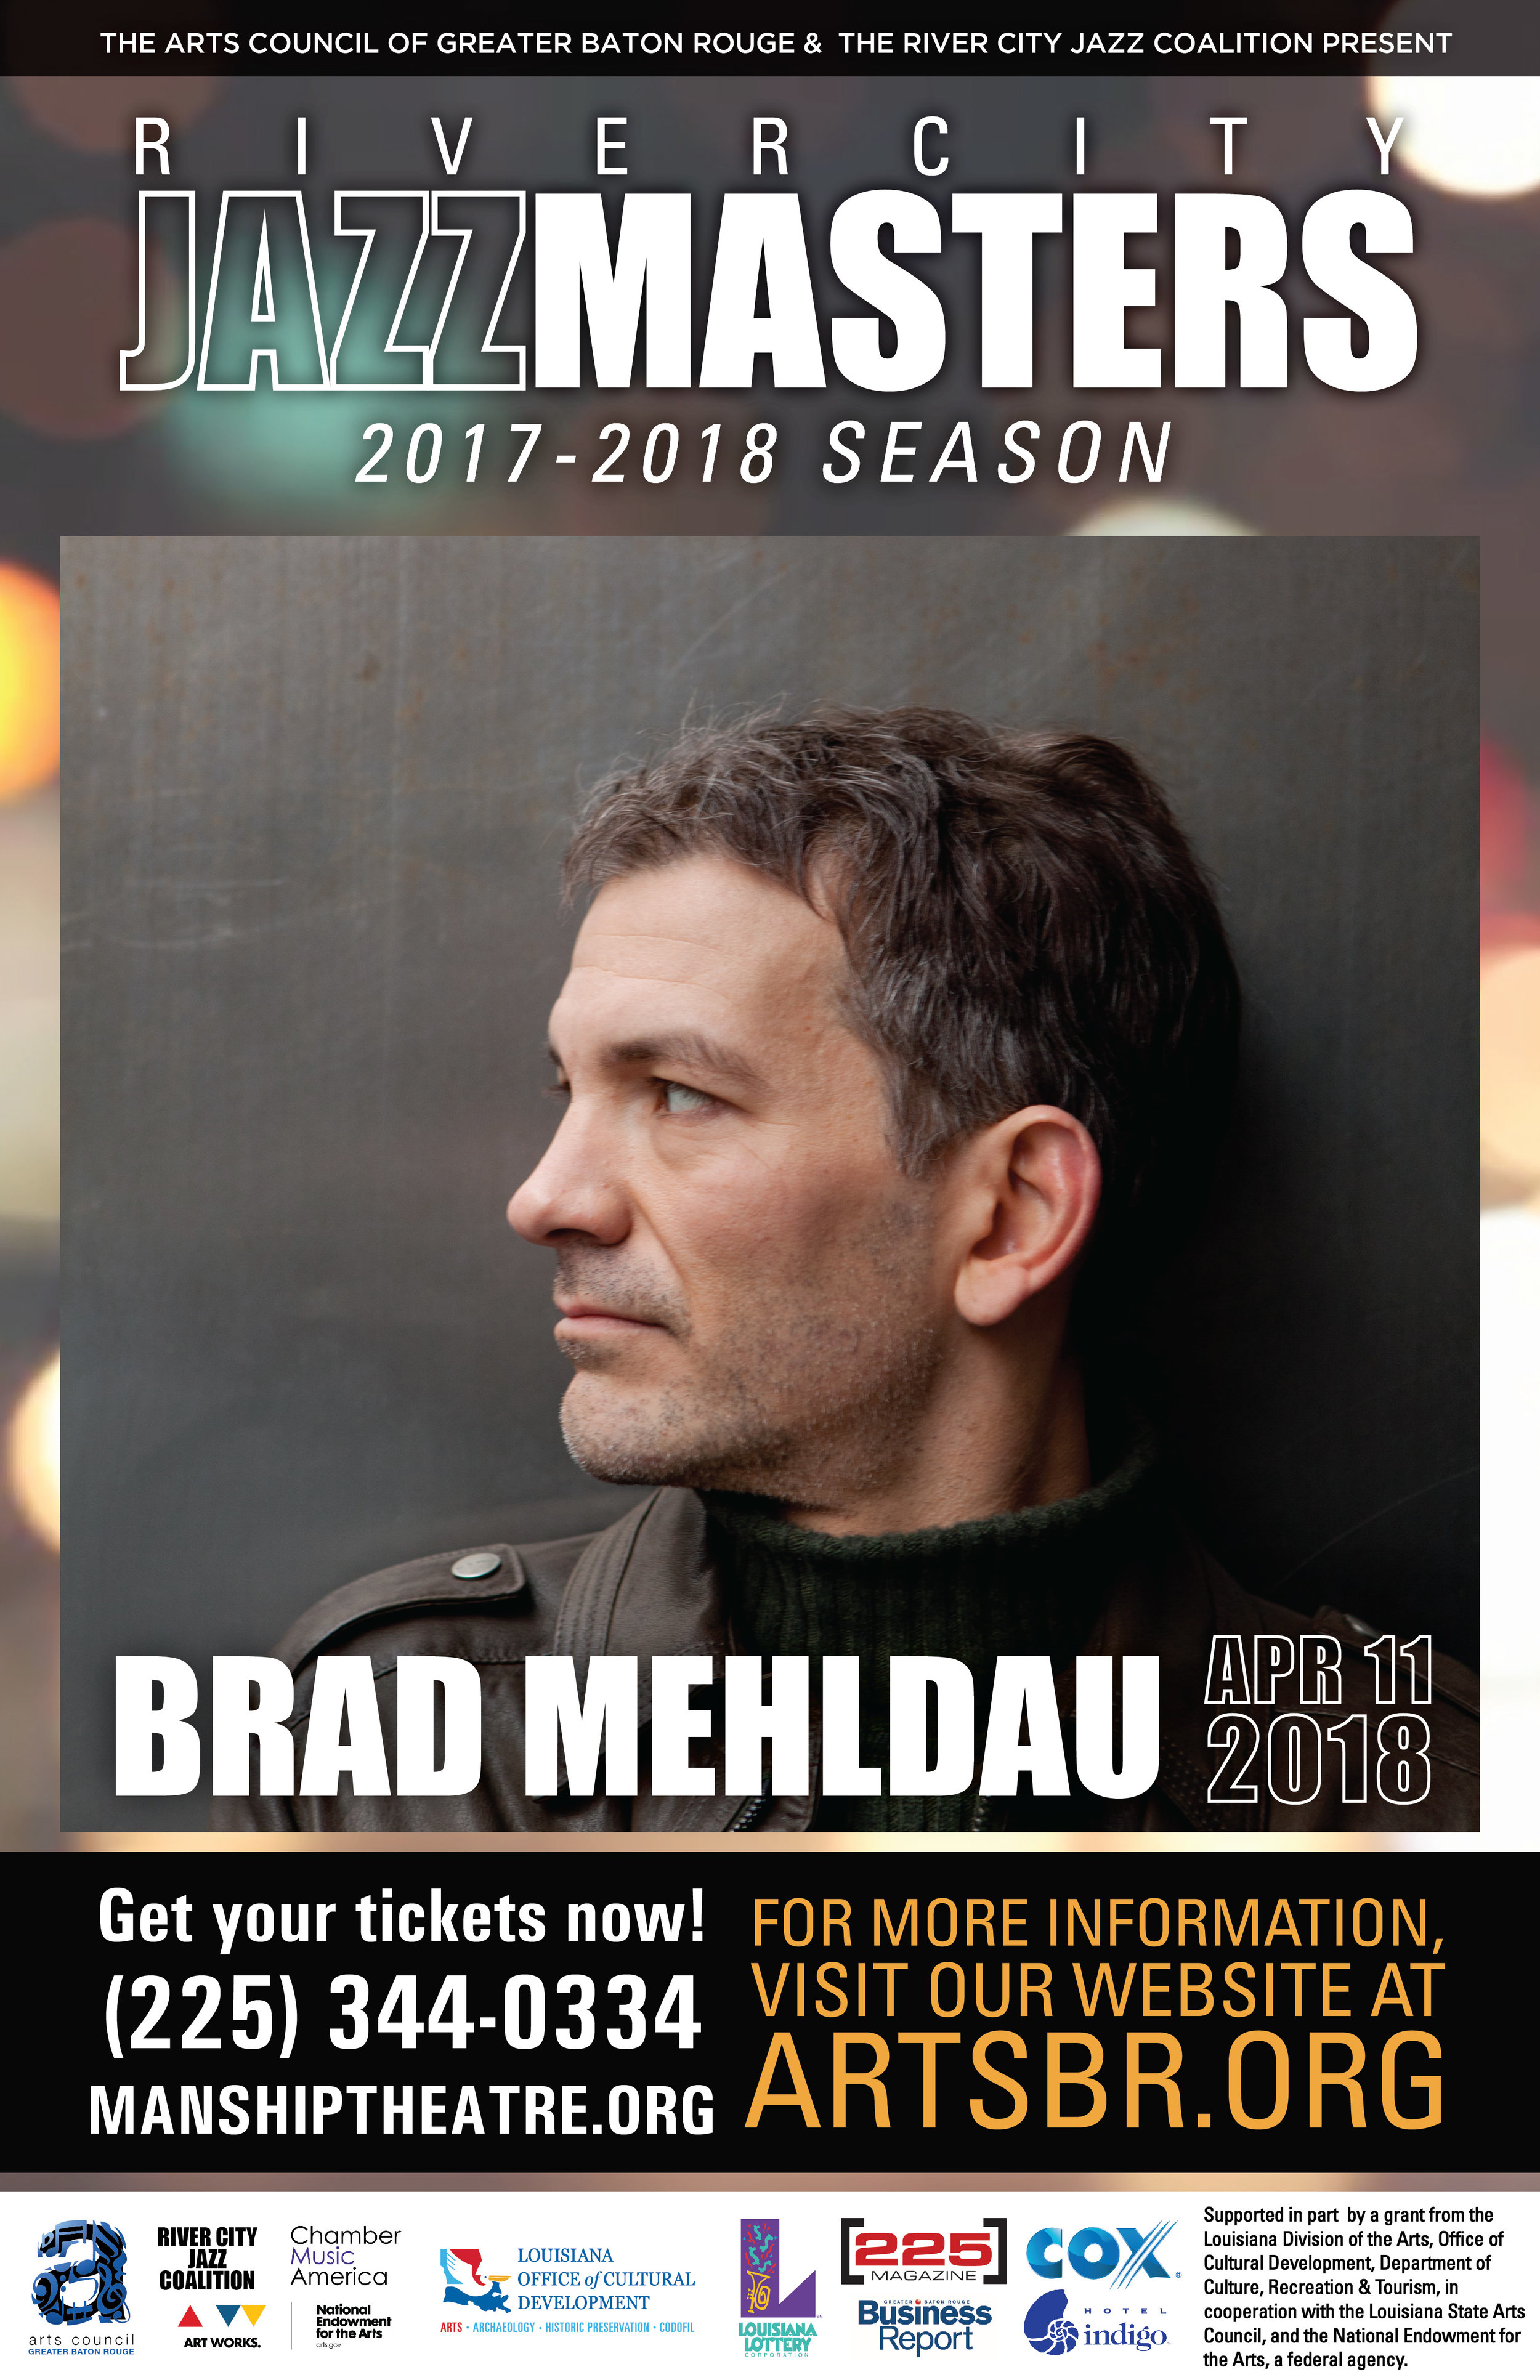 Jazz pianist Brad Mehldau has recorded and performed extensively since the early 1990s. Mehldau's most consistent output over the years has taken place in the trio format. Starting in 1996, his group released a series of five records on Warner Bros. entitled The Art of the Trio (recently re-packaged and re-released as a 5-Disc box set by Nonesuch in late 2011).  Other Mehldau recordings include Largo, a collaborative effort with the innovative musician and producer Jon Brion, and Anything Goes—a trio outing with bassist Larry Grenadier and drummer Jorge Rossy. Mehldau has performed around the world at a steady pace since the mid-1990s, with his trio and as a solo pianist. His performances convey a wide range of expression. There is often an intellectual rigor to the continuous process of abstraction that may take place on a given tune, and a certain density of information.